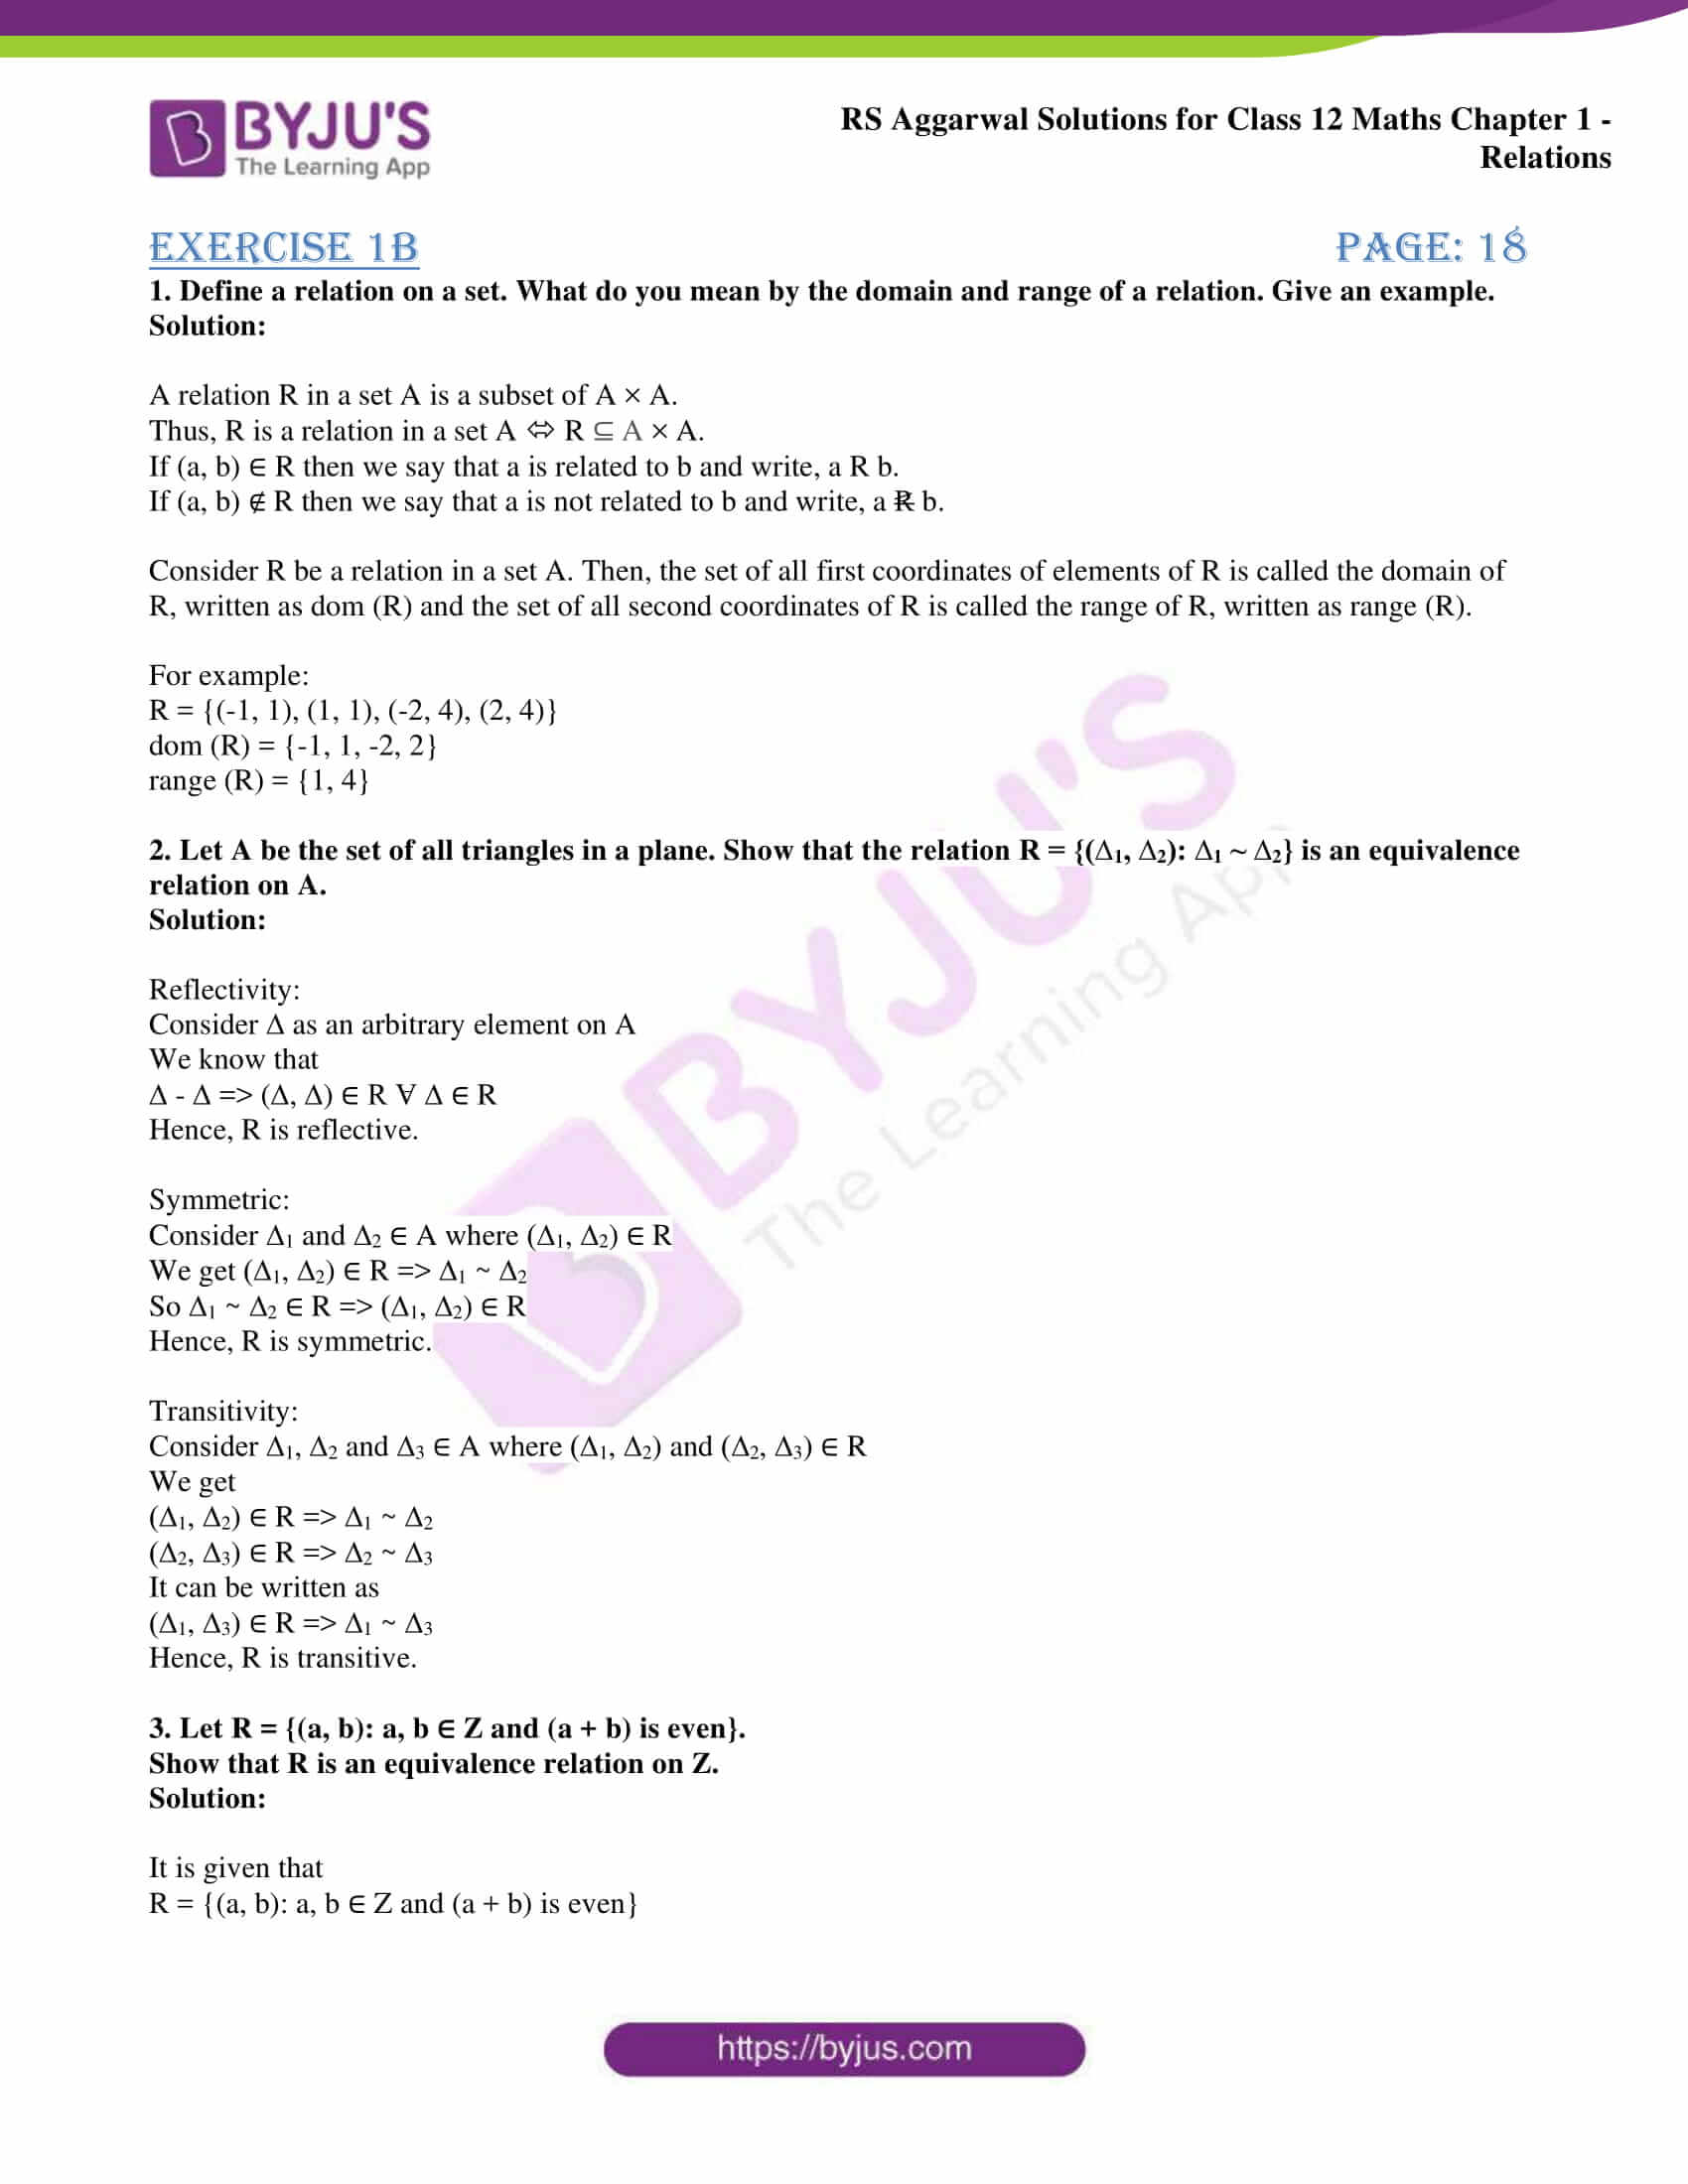 rs aggarwal solution class 12 maths chapter 1 ex 1b